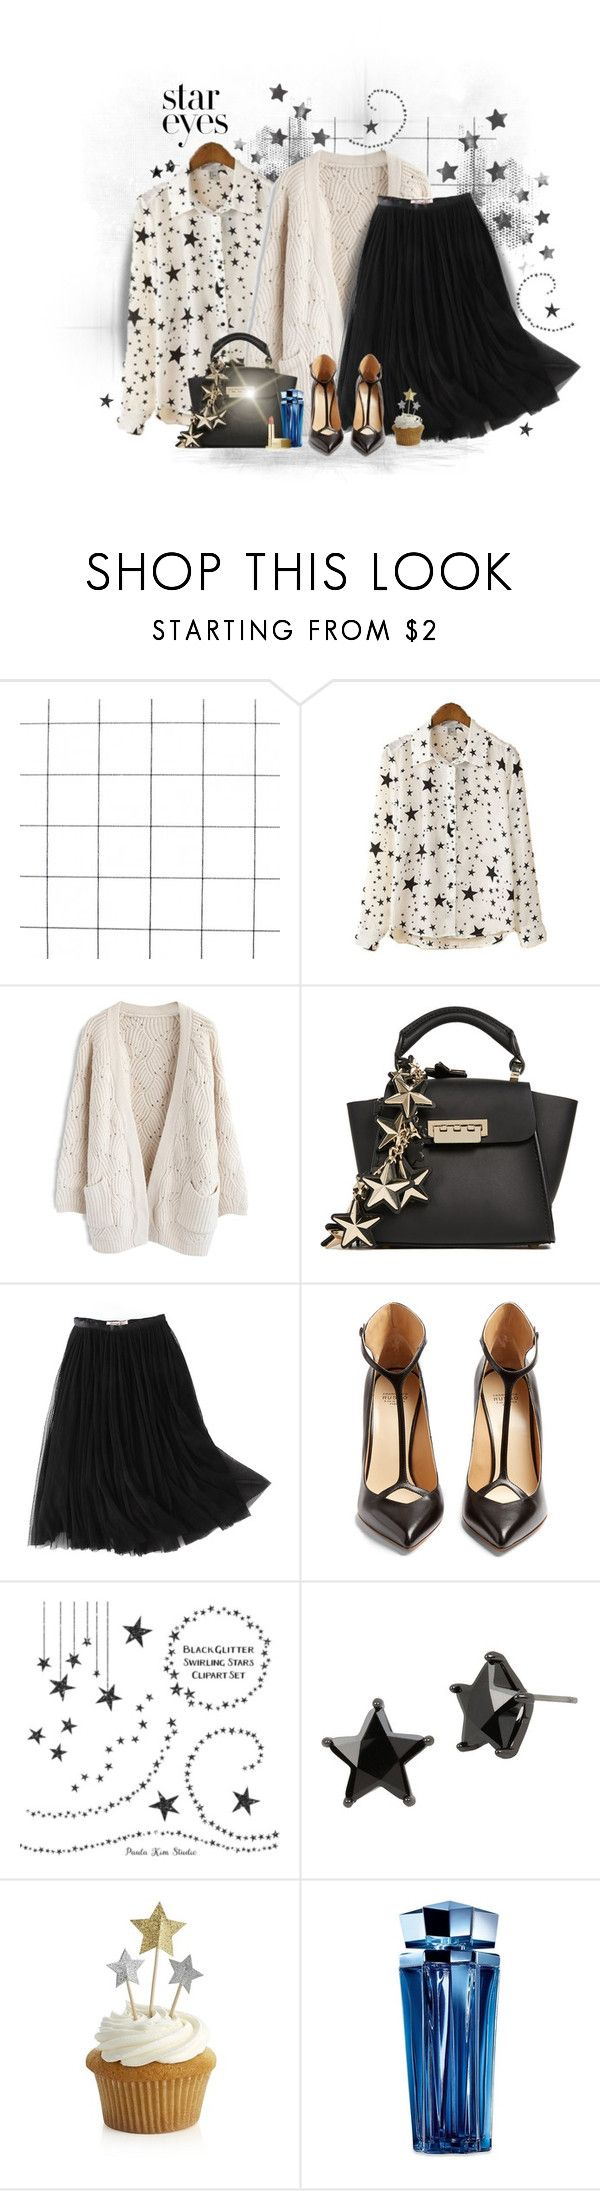 """""""428"""" by treysi-whitney ❤ liked on Polyvore featuring Chicwish, ZAC Zac Posen, WithChic, Francesco Russo, Betsey Johnson, Crate and Barrel, Thierry Mugler, Lipstick Queen and StarOutfits"""